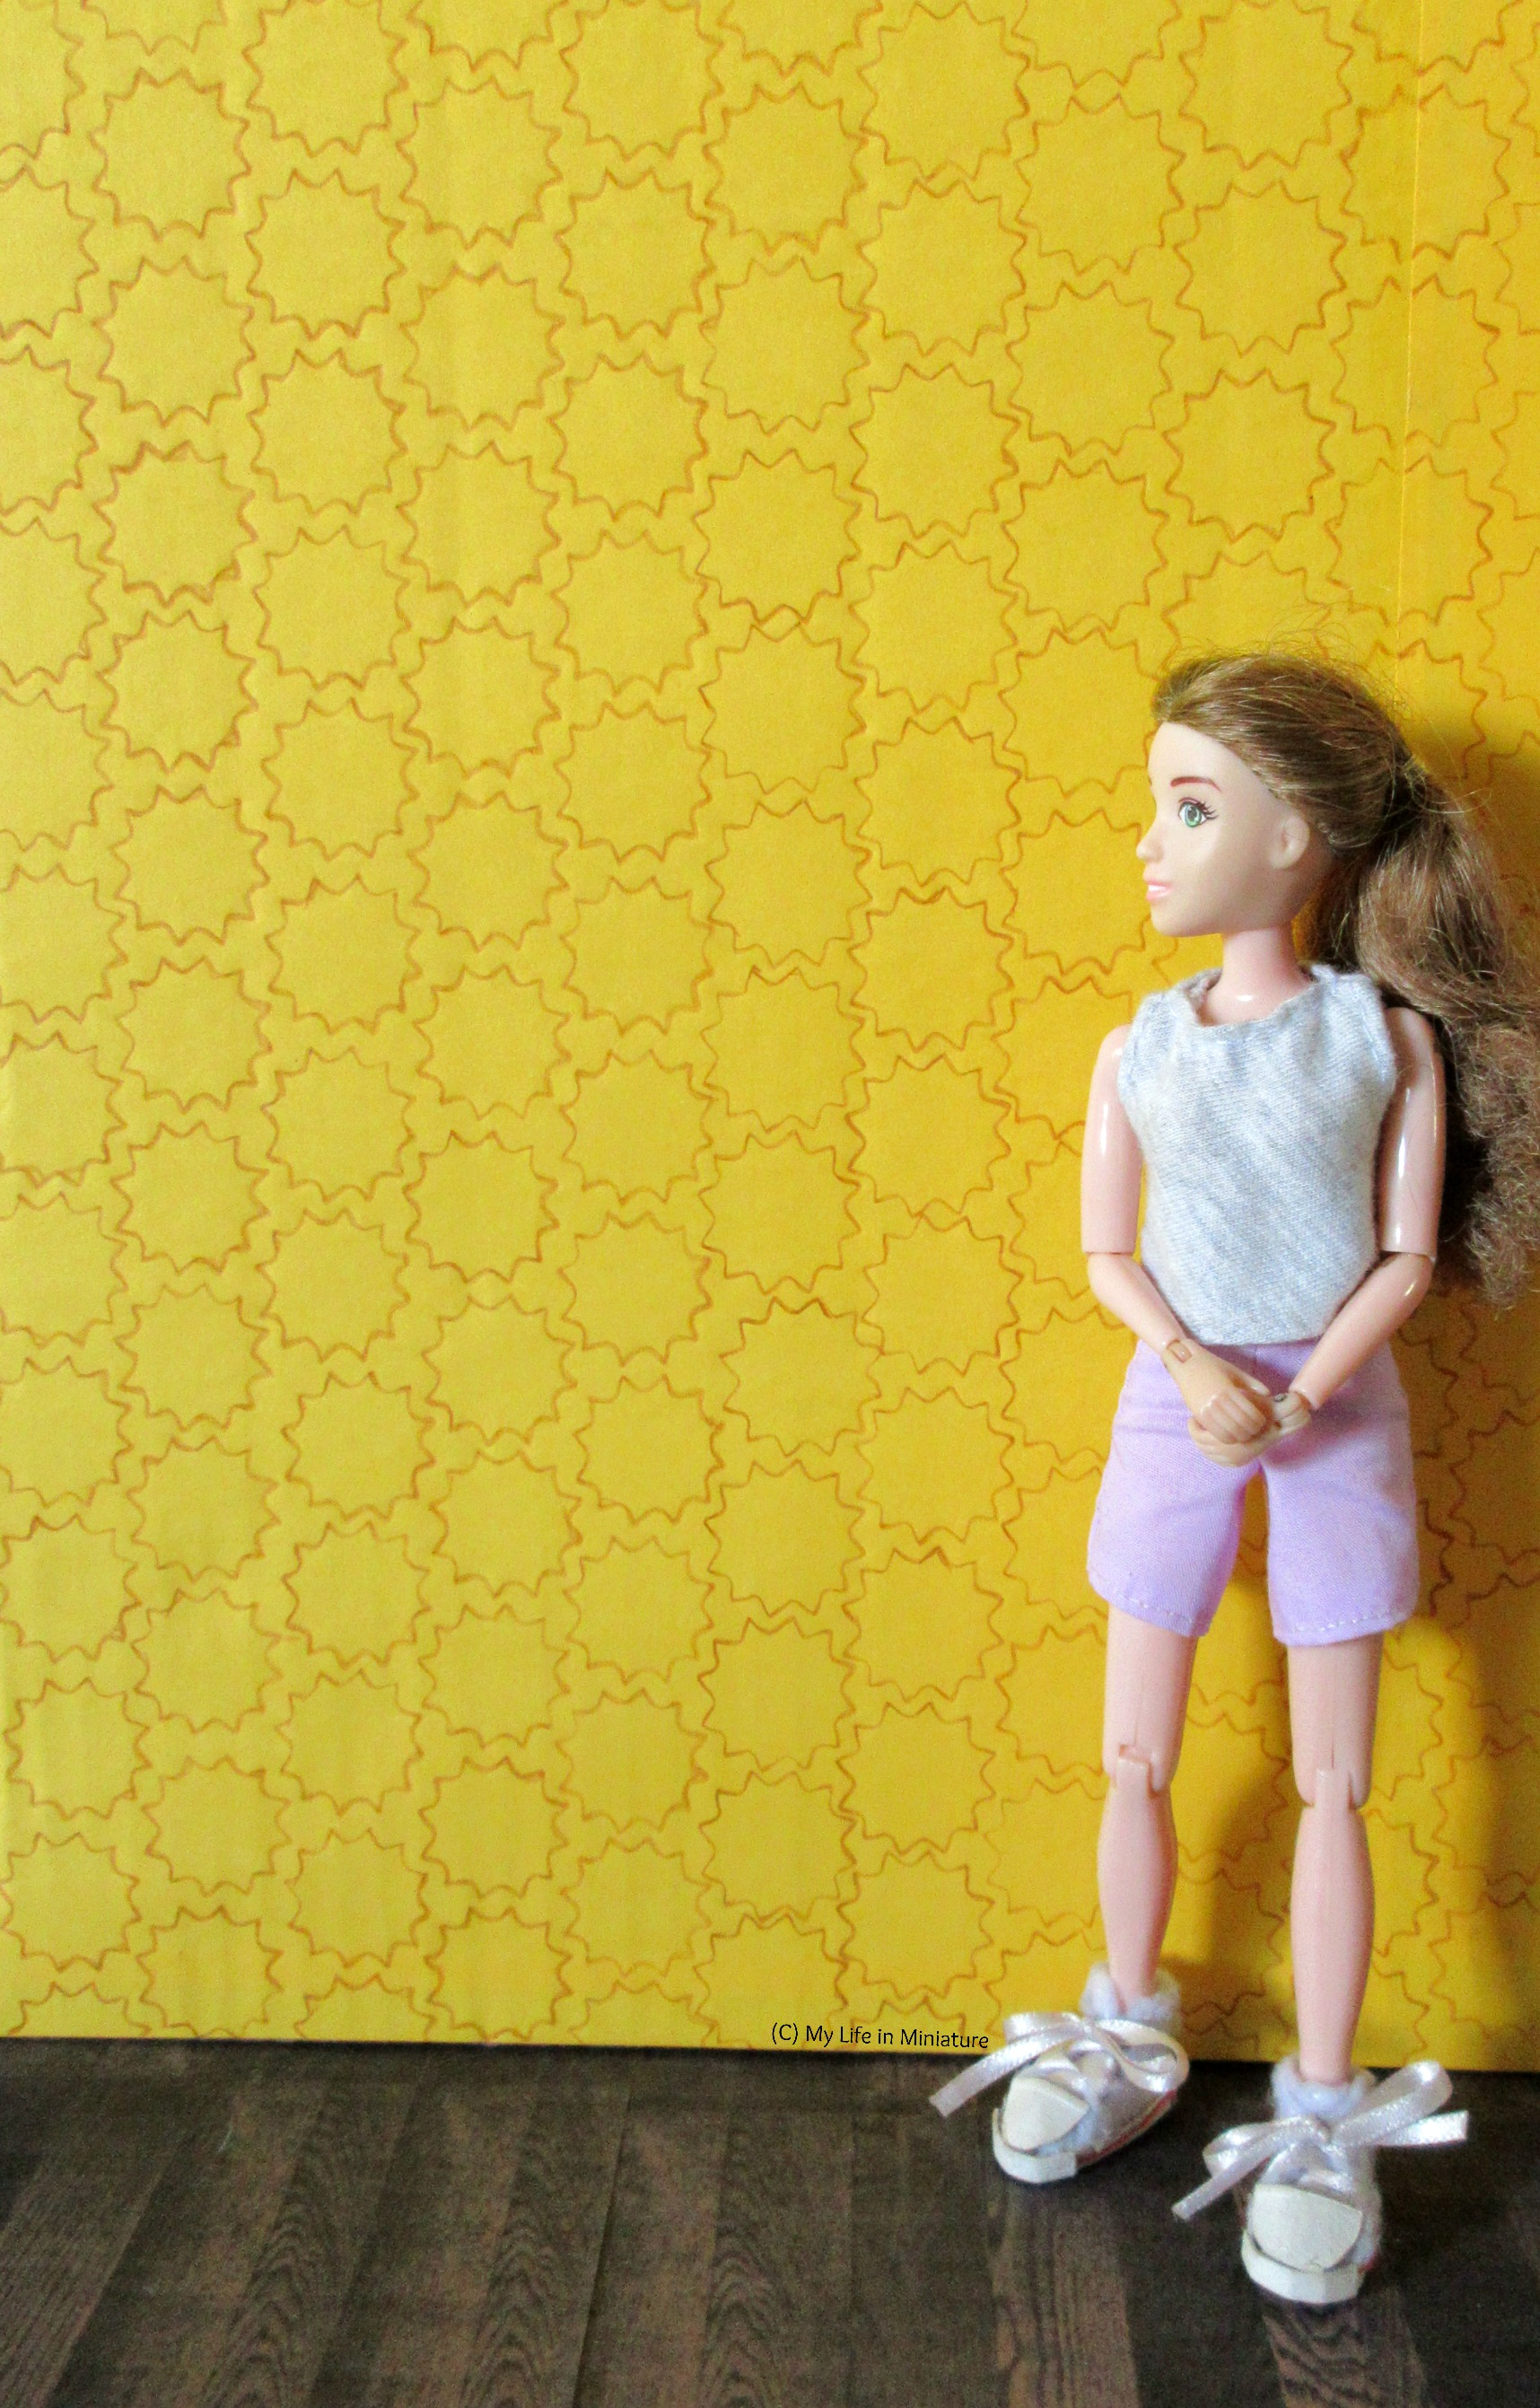 Sarah stands in front of one of the yellow walls, which is covered in the brown stencilled 12-pointed-star pattern.